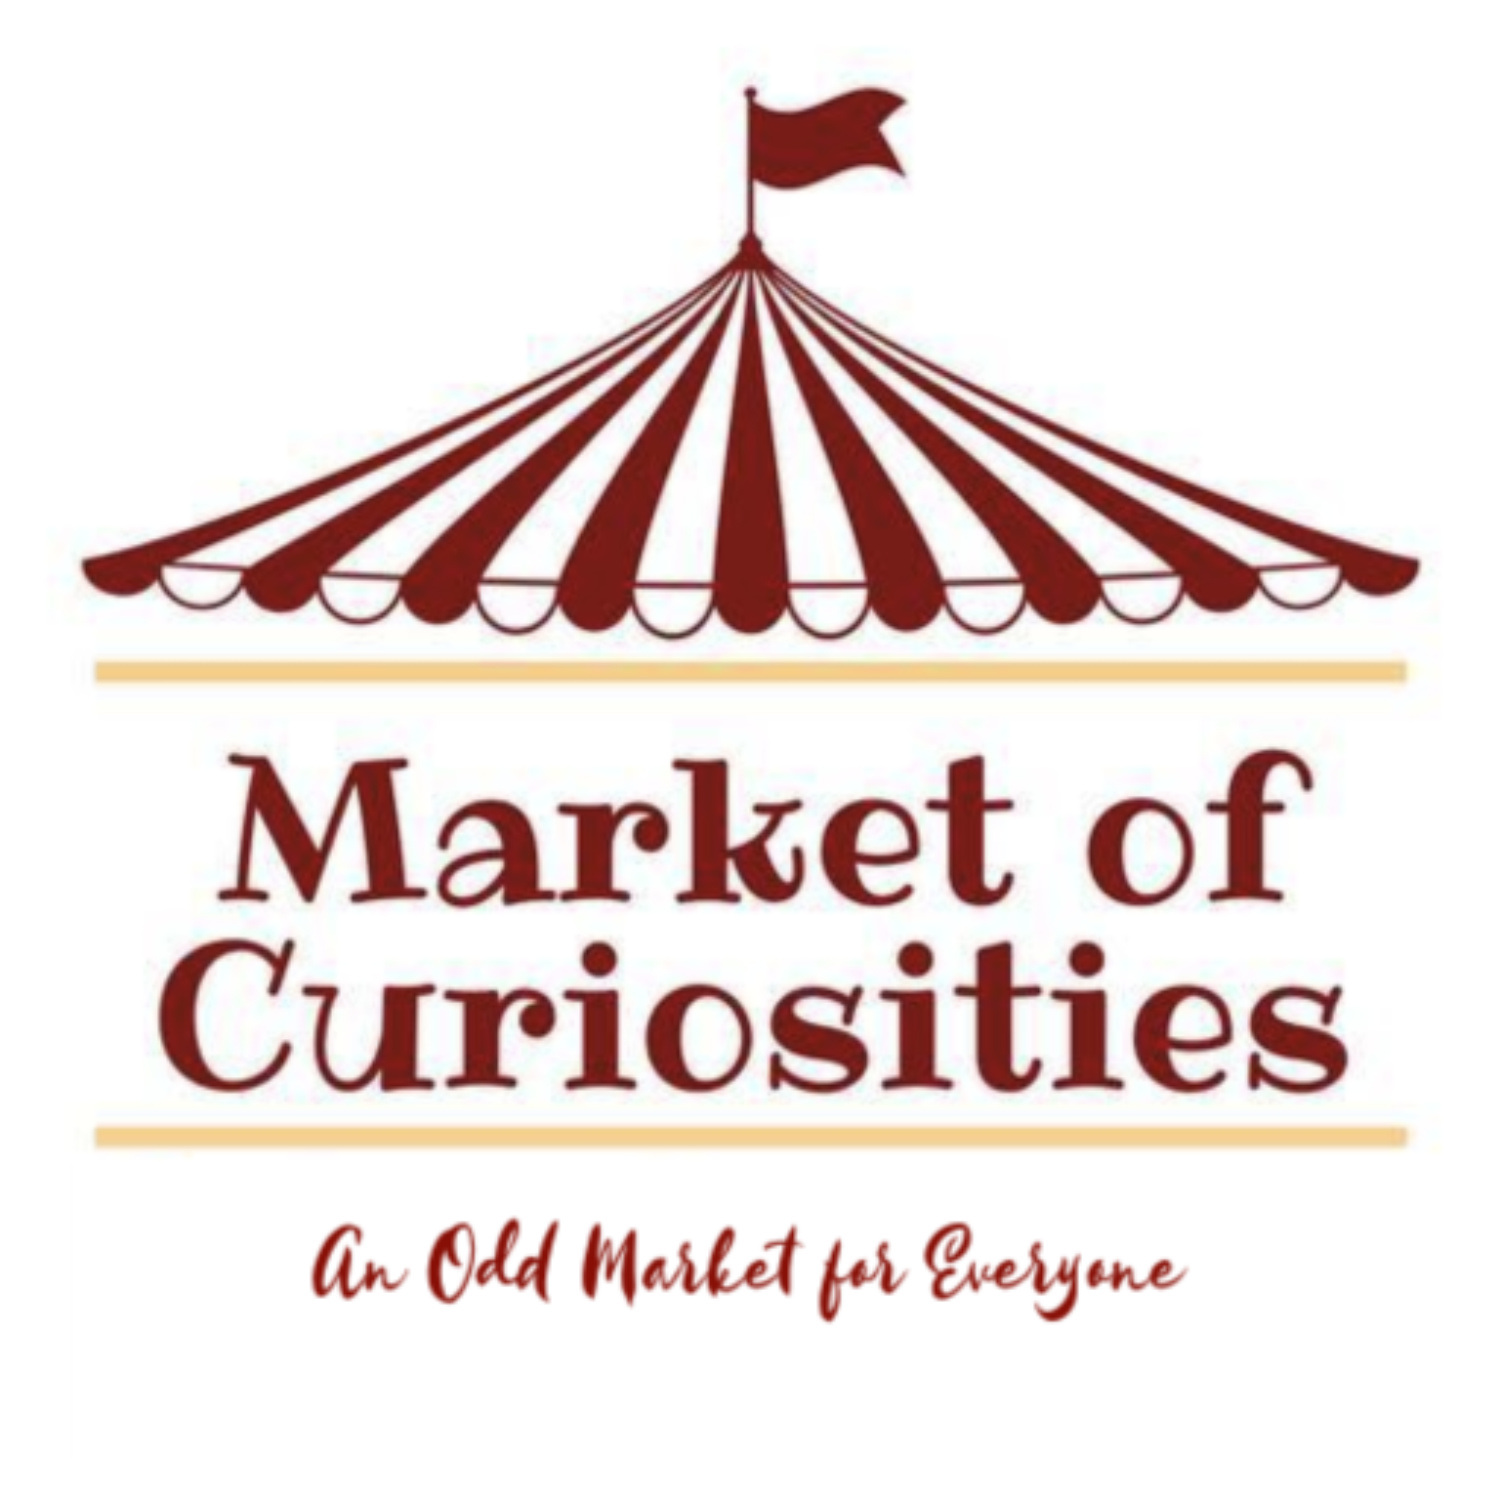 Market of Curiosities